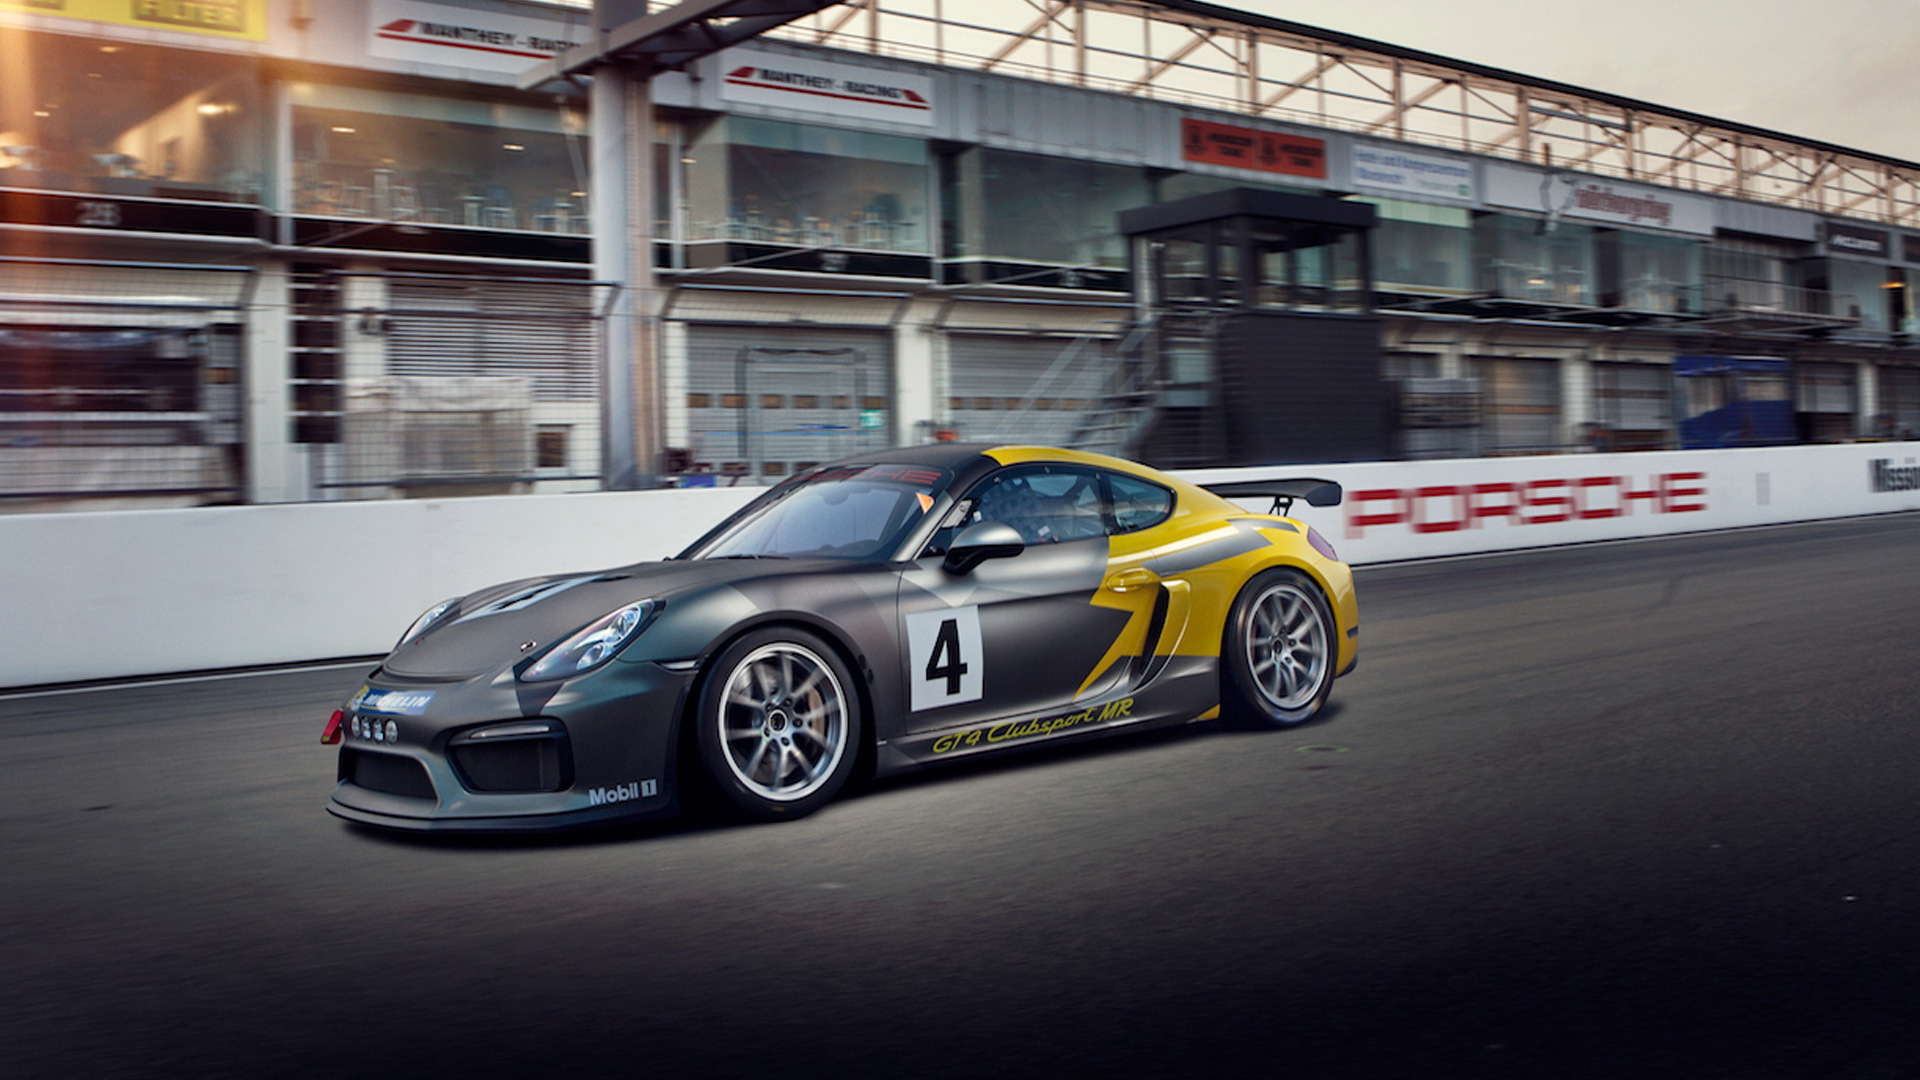 2017 Porsche Cayman GT4 Clubsport MR